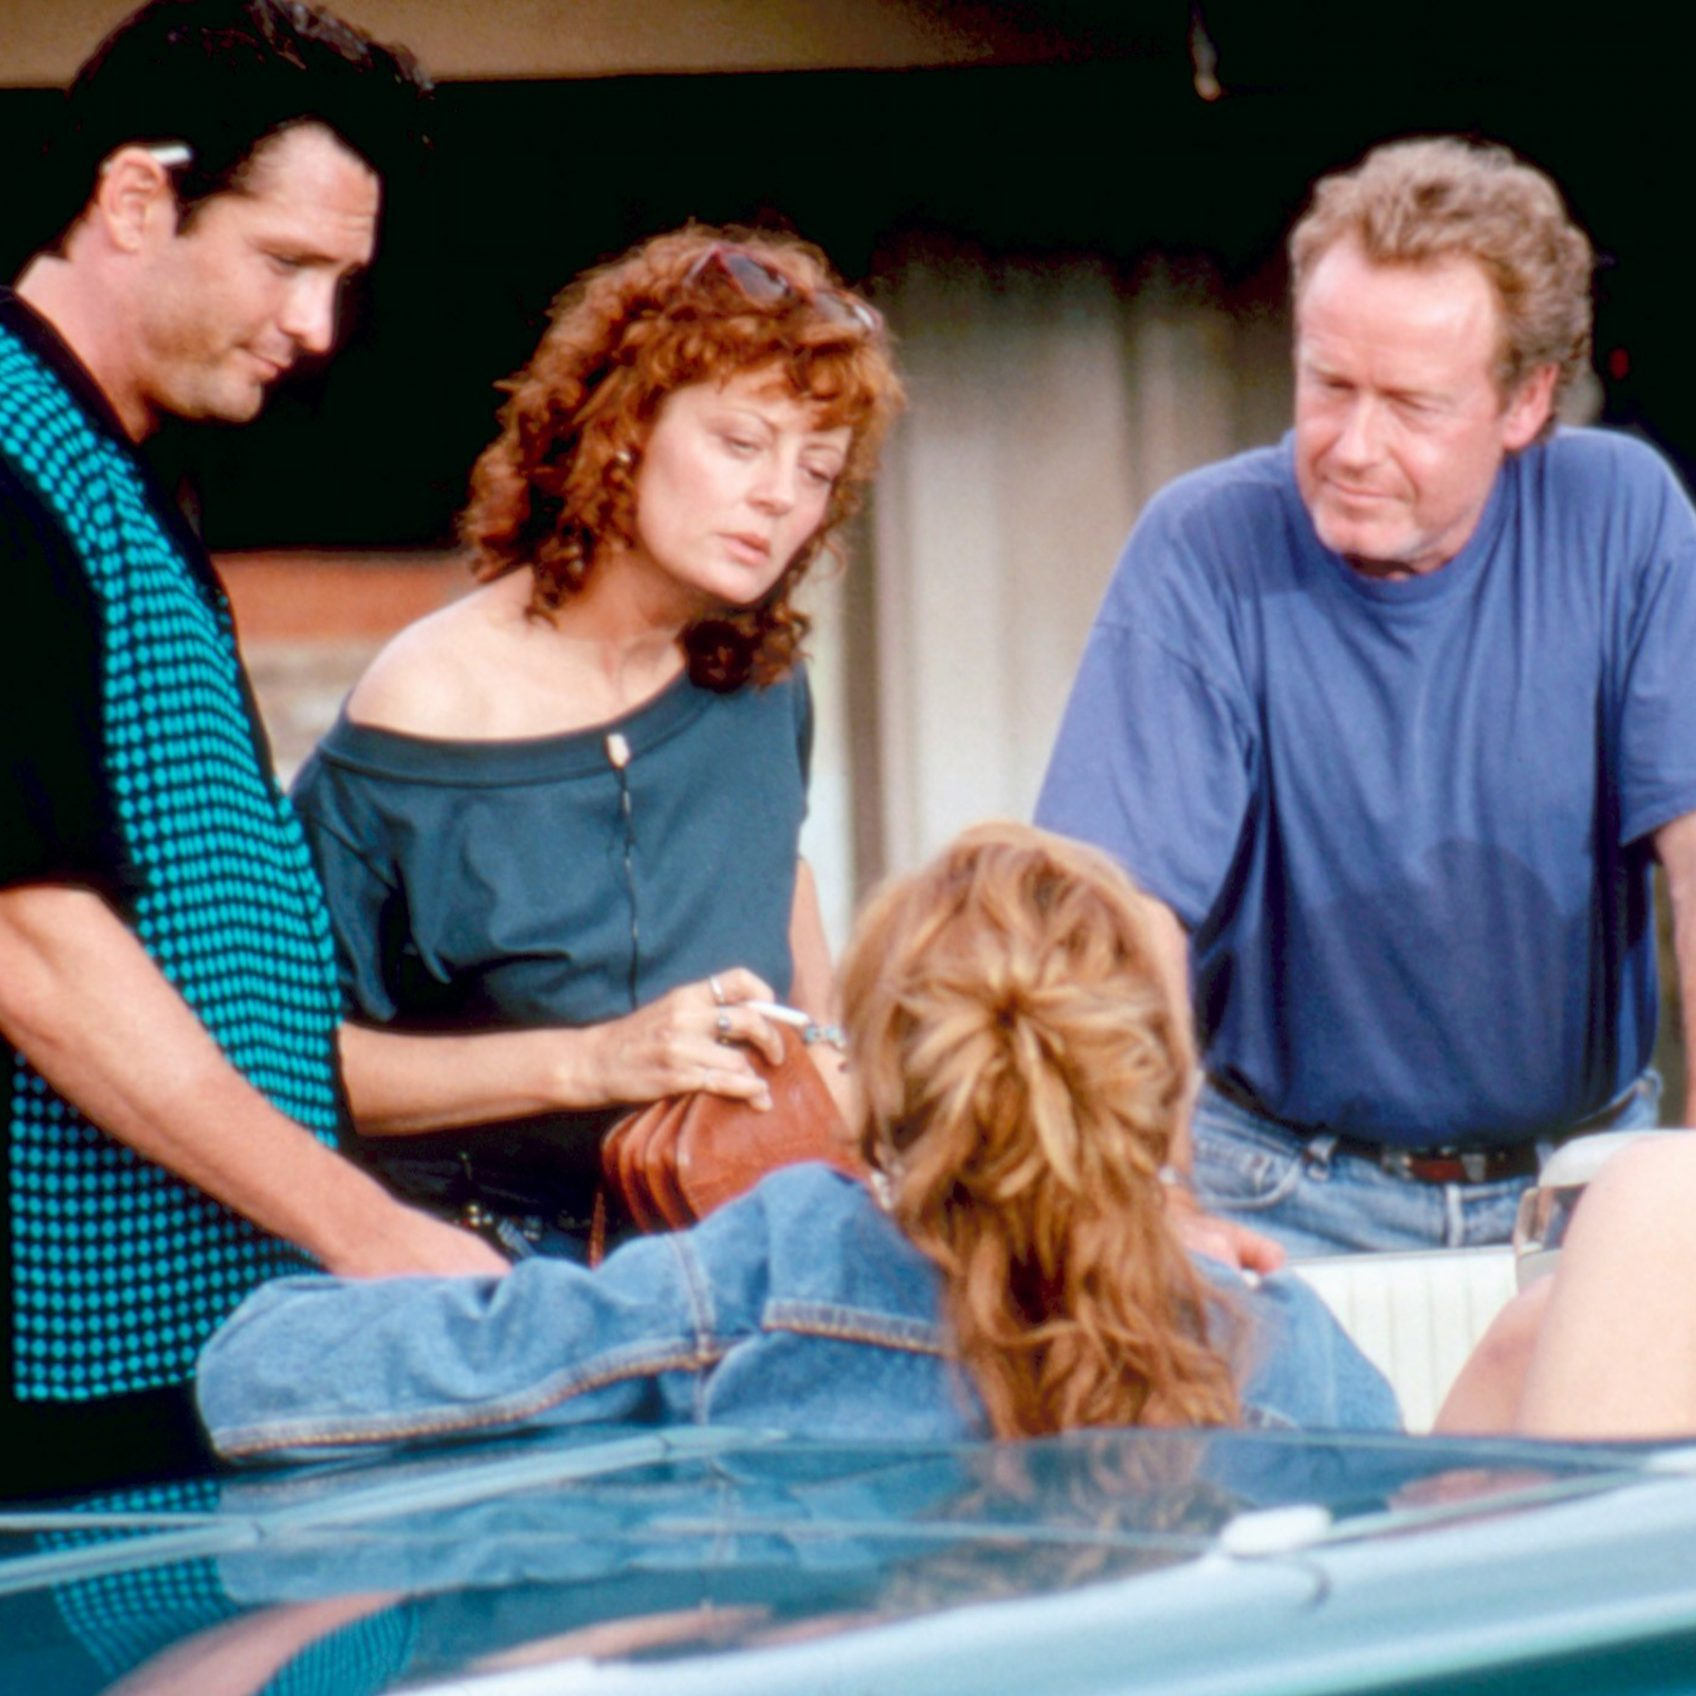 thelma et louise photo ridley scott susan sarandon 1034300 scaled e1603444662331 20 Things You Might Not Have Realised About Thelma & Louise